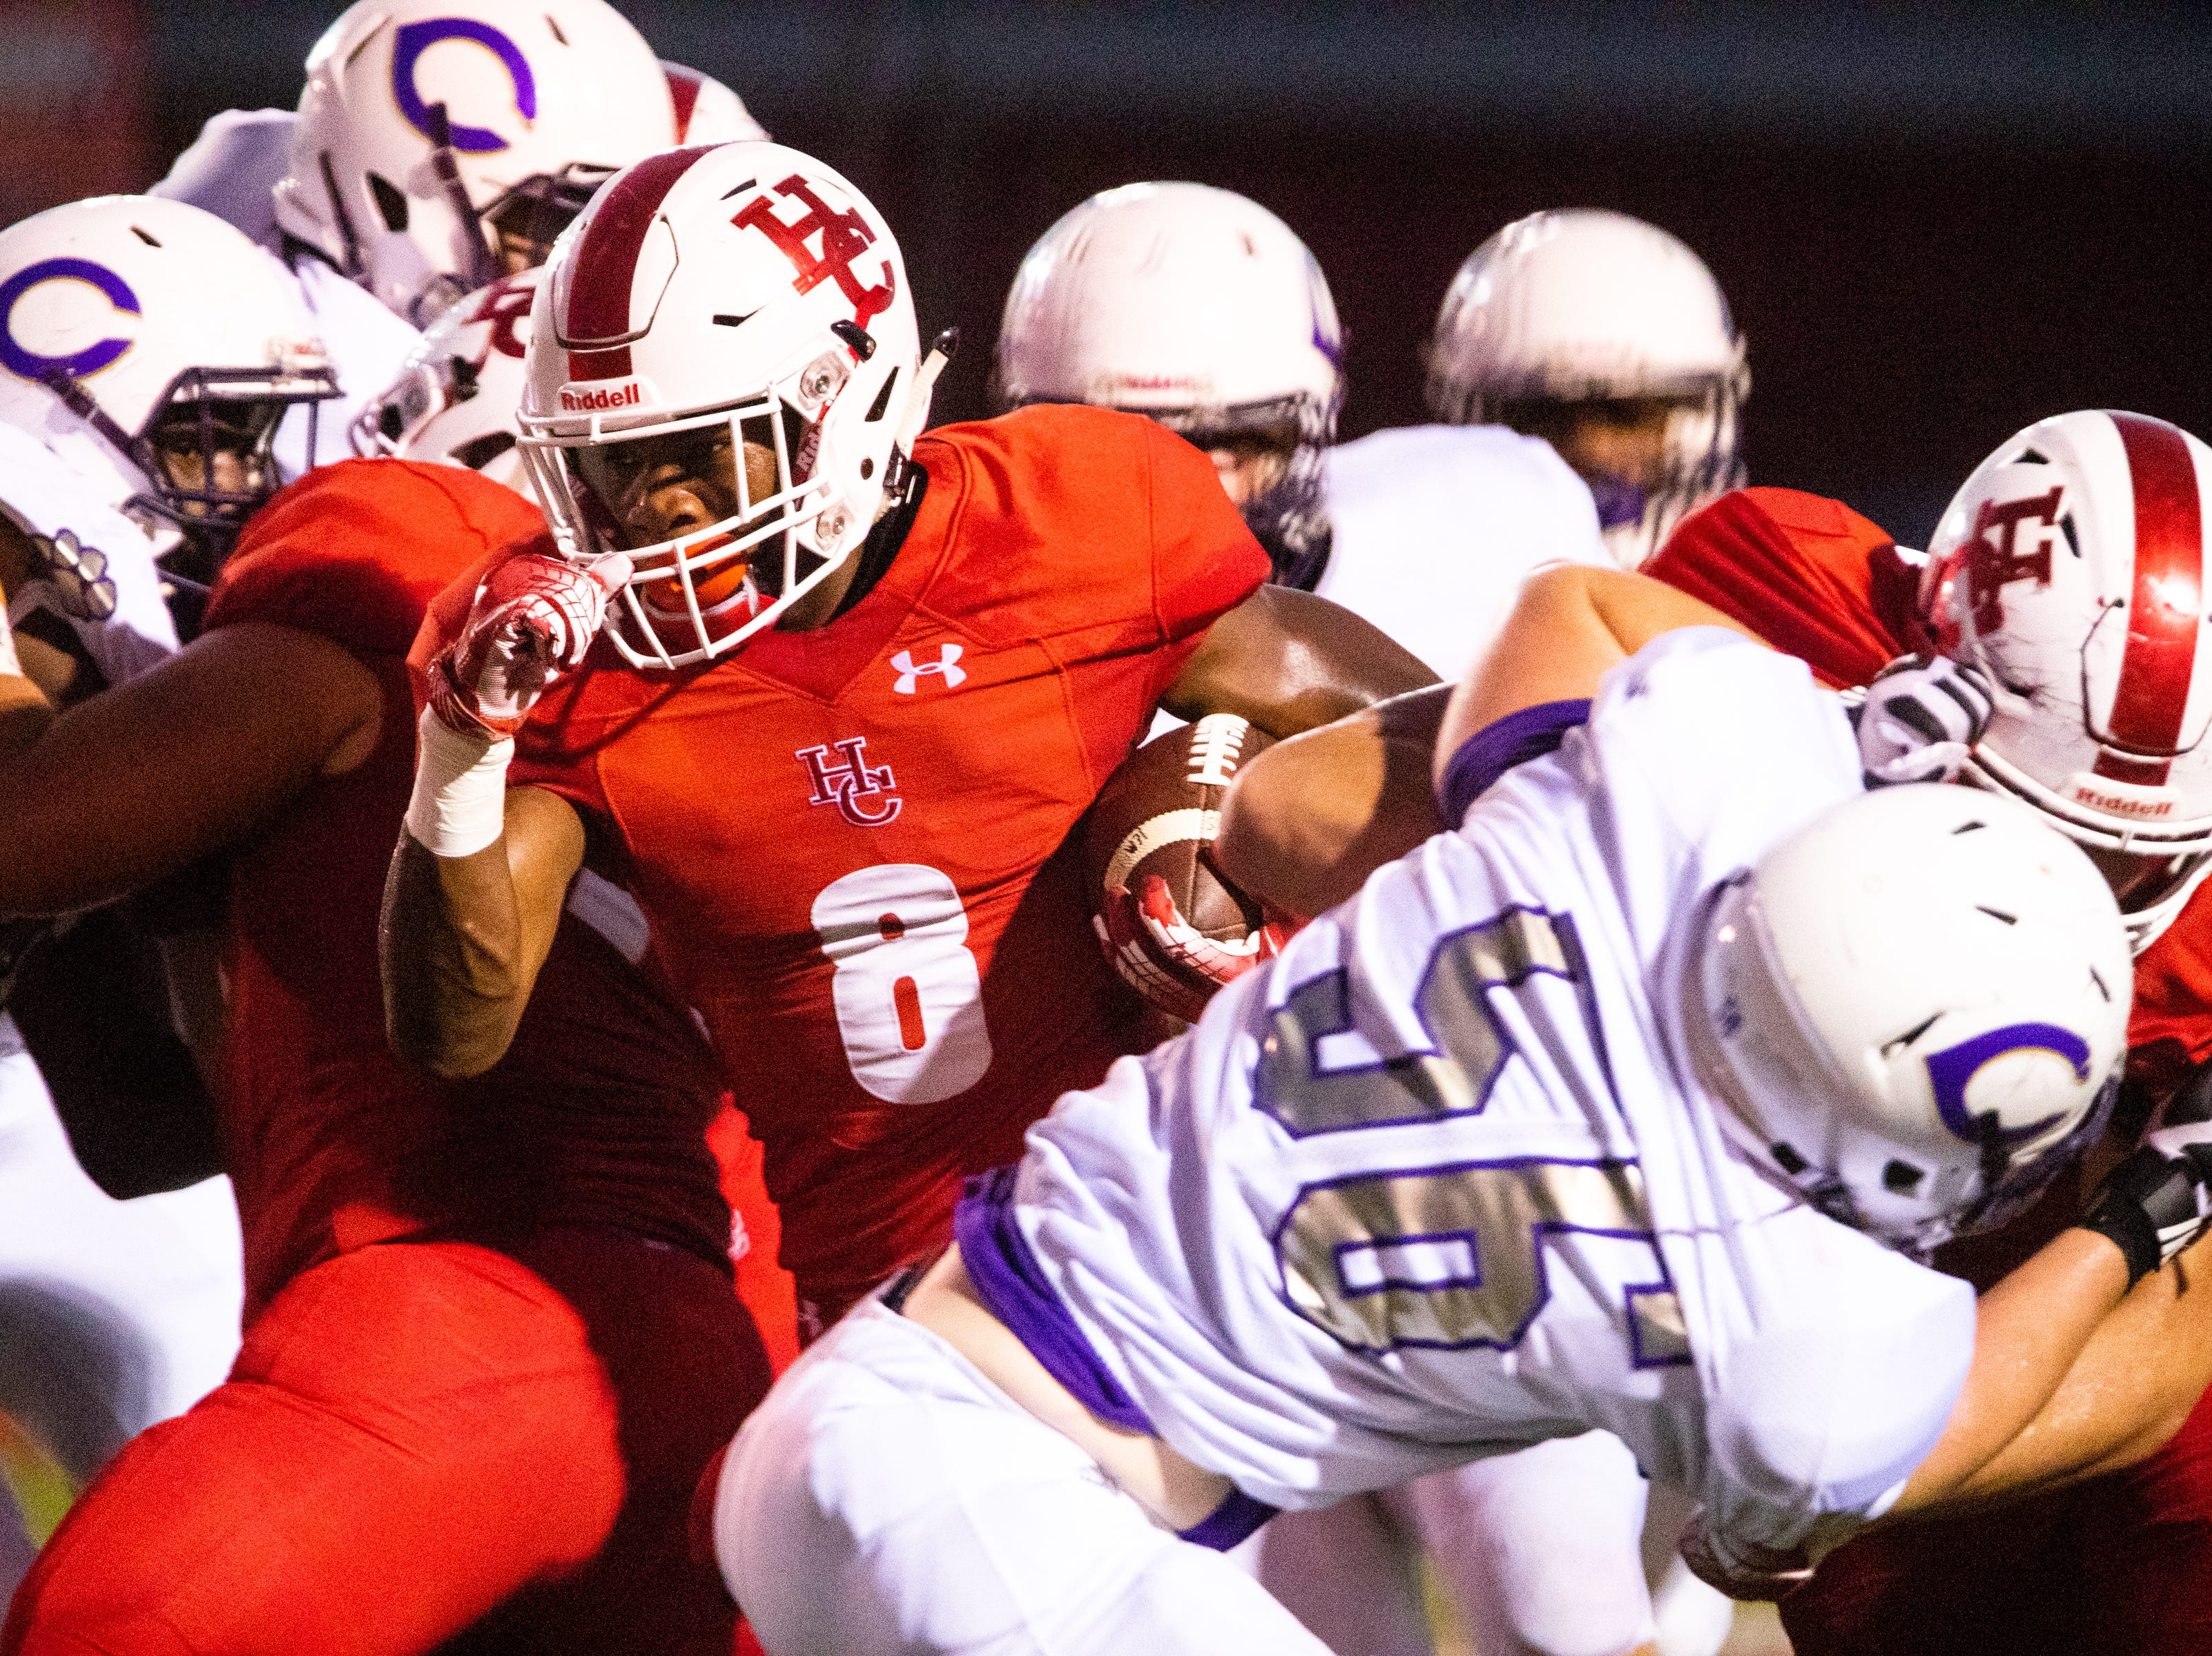 Joseph Travis (8) of Henry County runs the ball during the first half at Henry County Friday, Sept. 14, 2018, in Paris, Tenn.